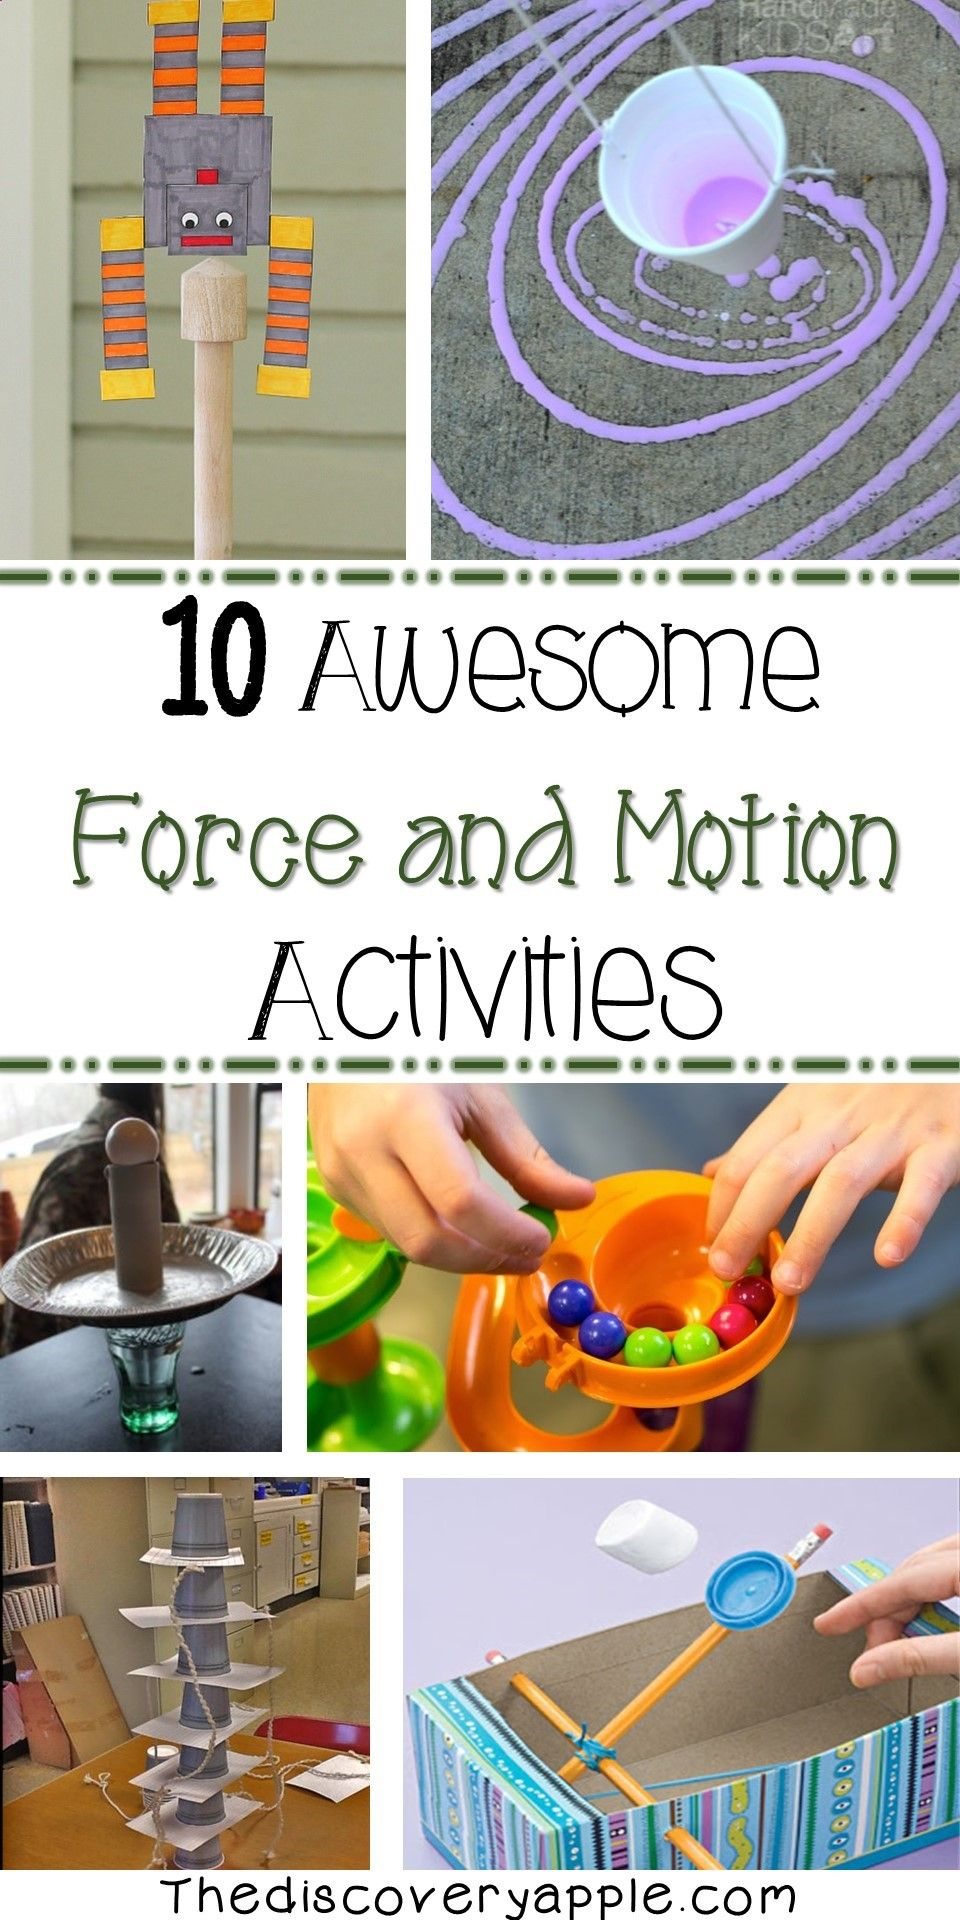 10 awesome force and motion activities lots of great activities